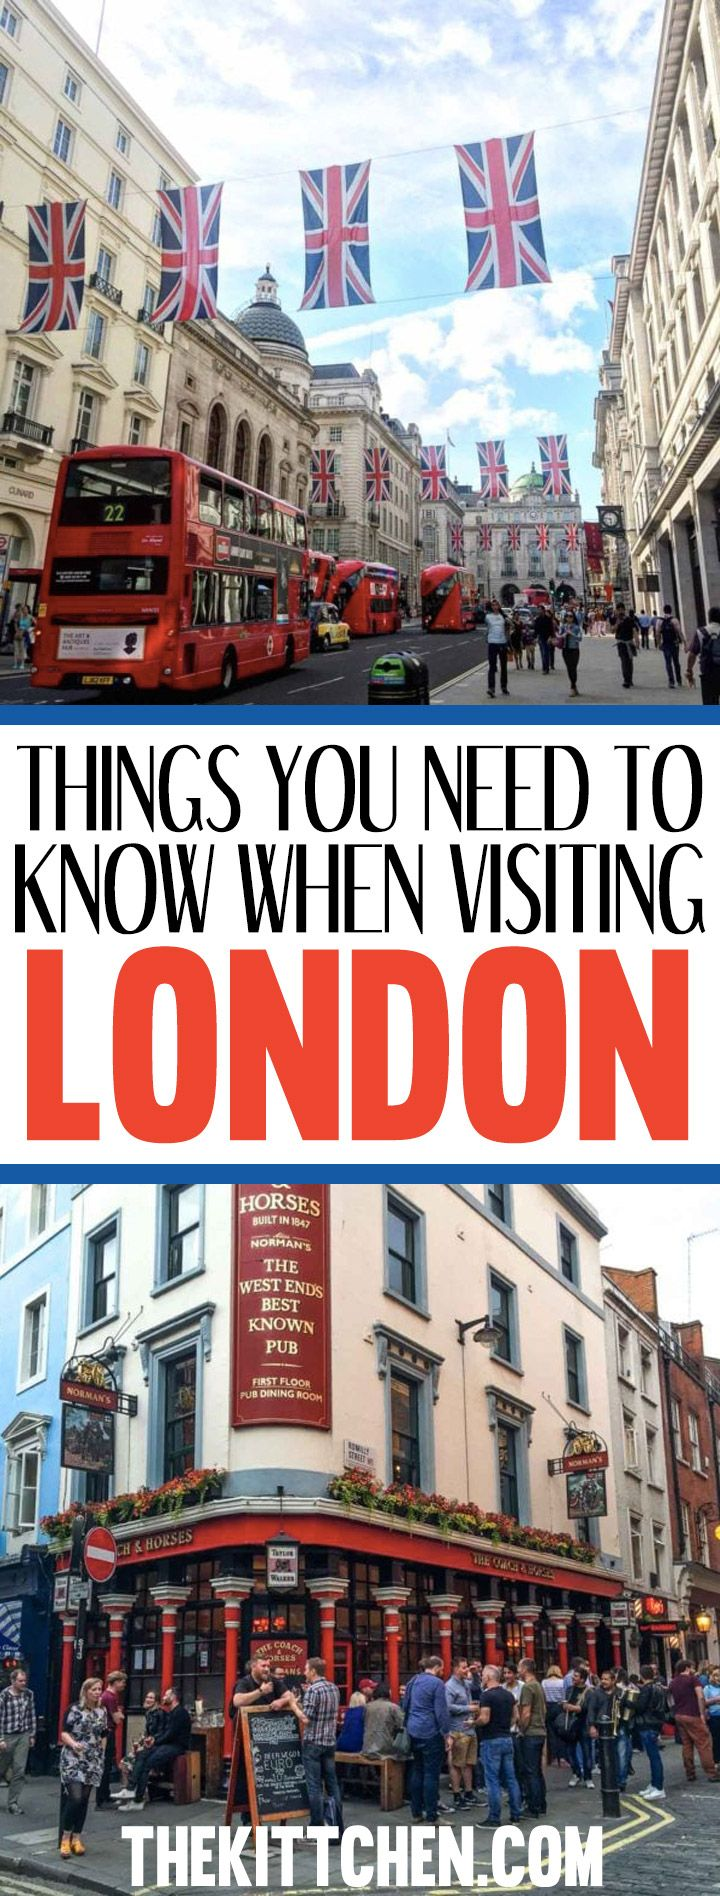 Heading to London? These top travel tips will help you get around the city, save money and know how things work in the city. Click to know what the locals know! #london #europe *************************** Europe travel | Europe destinations | London travel | London travel tips | London trip | UK travel | England travel